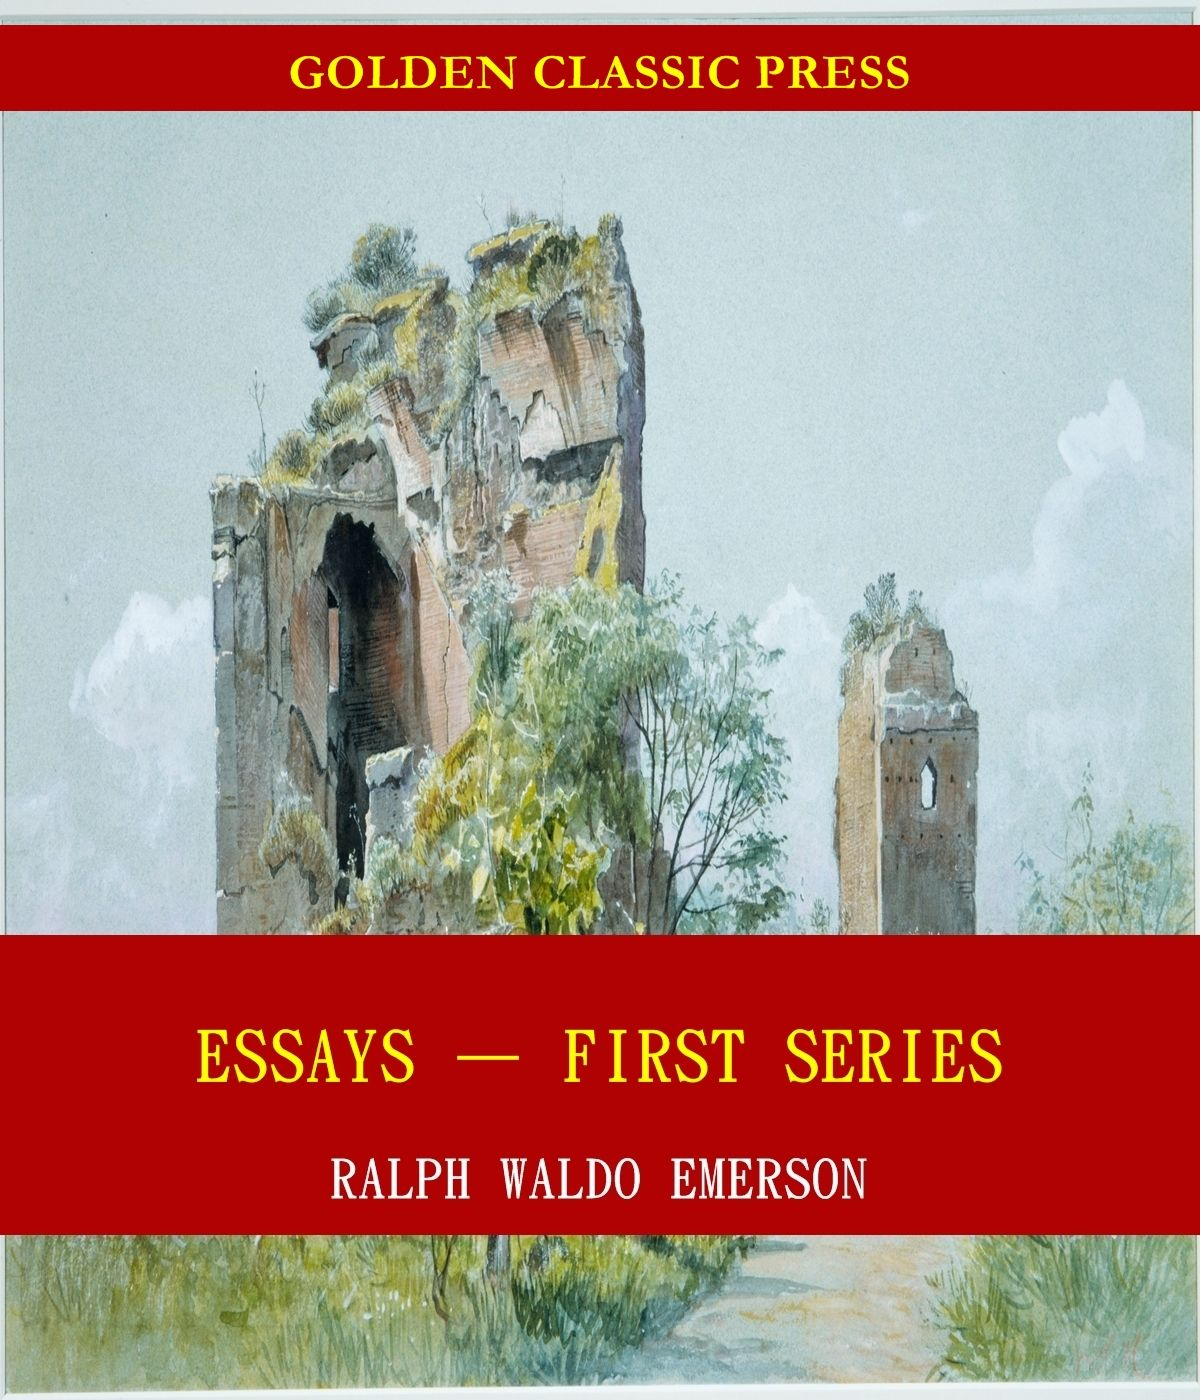 008 Essays First Series Essay Example Stunning Emerson Pdf Shelburne Publisher Full